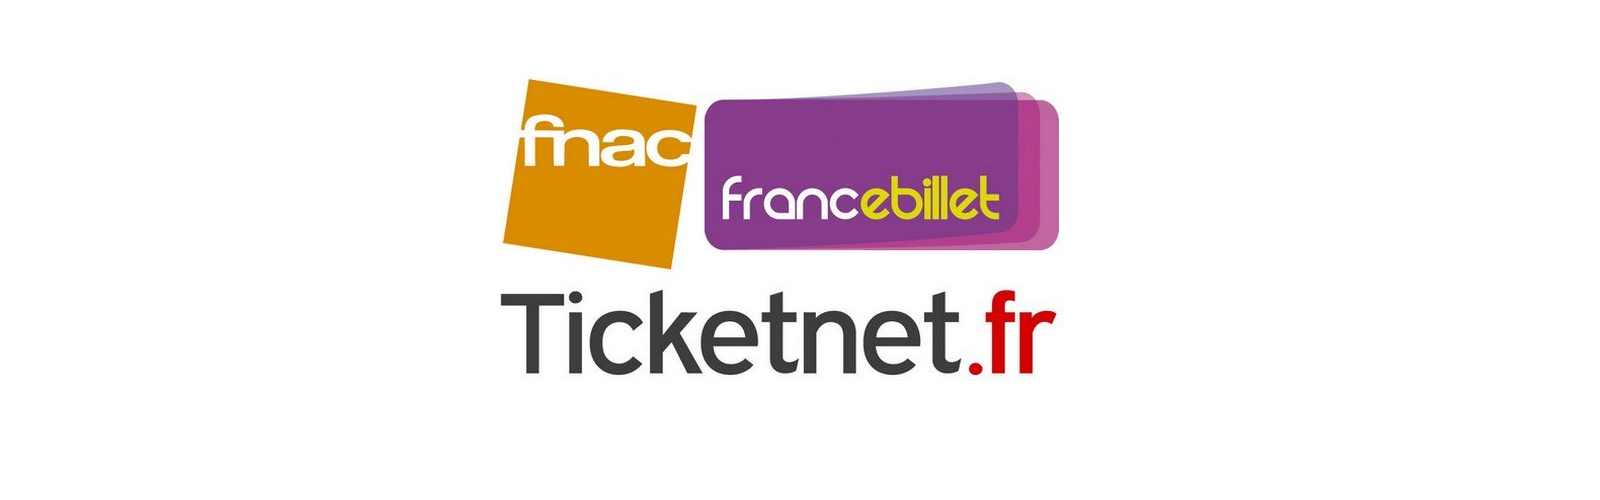 fnac-ticketnet-france-billet